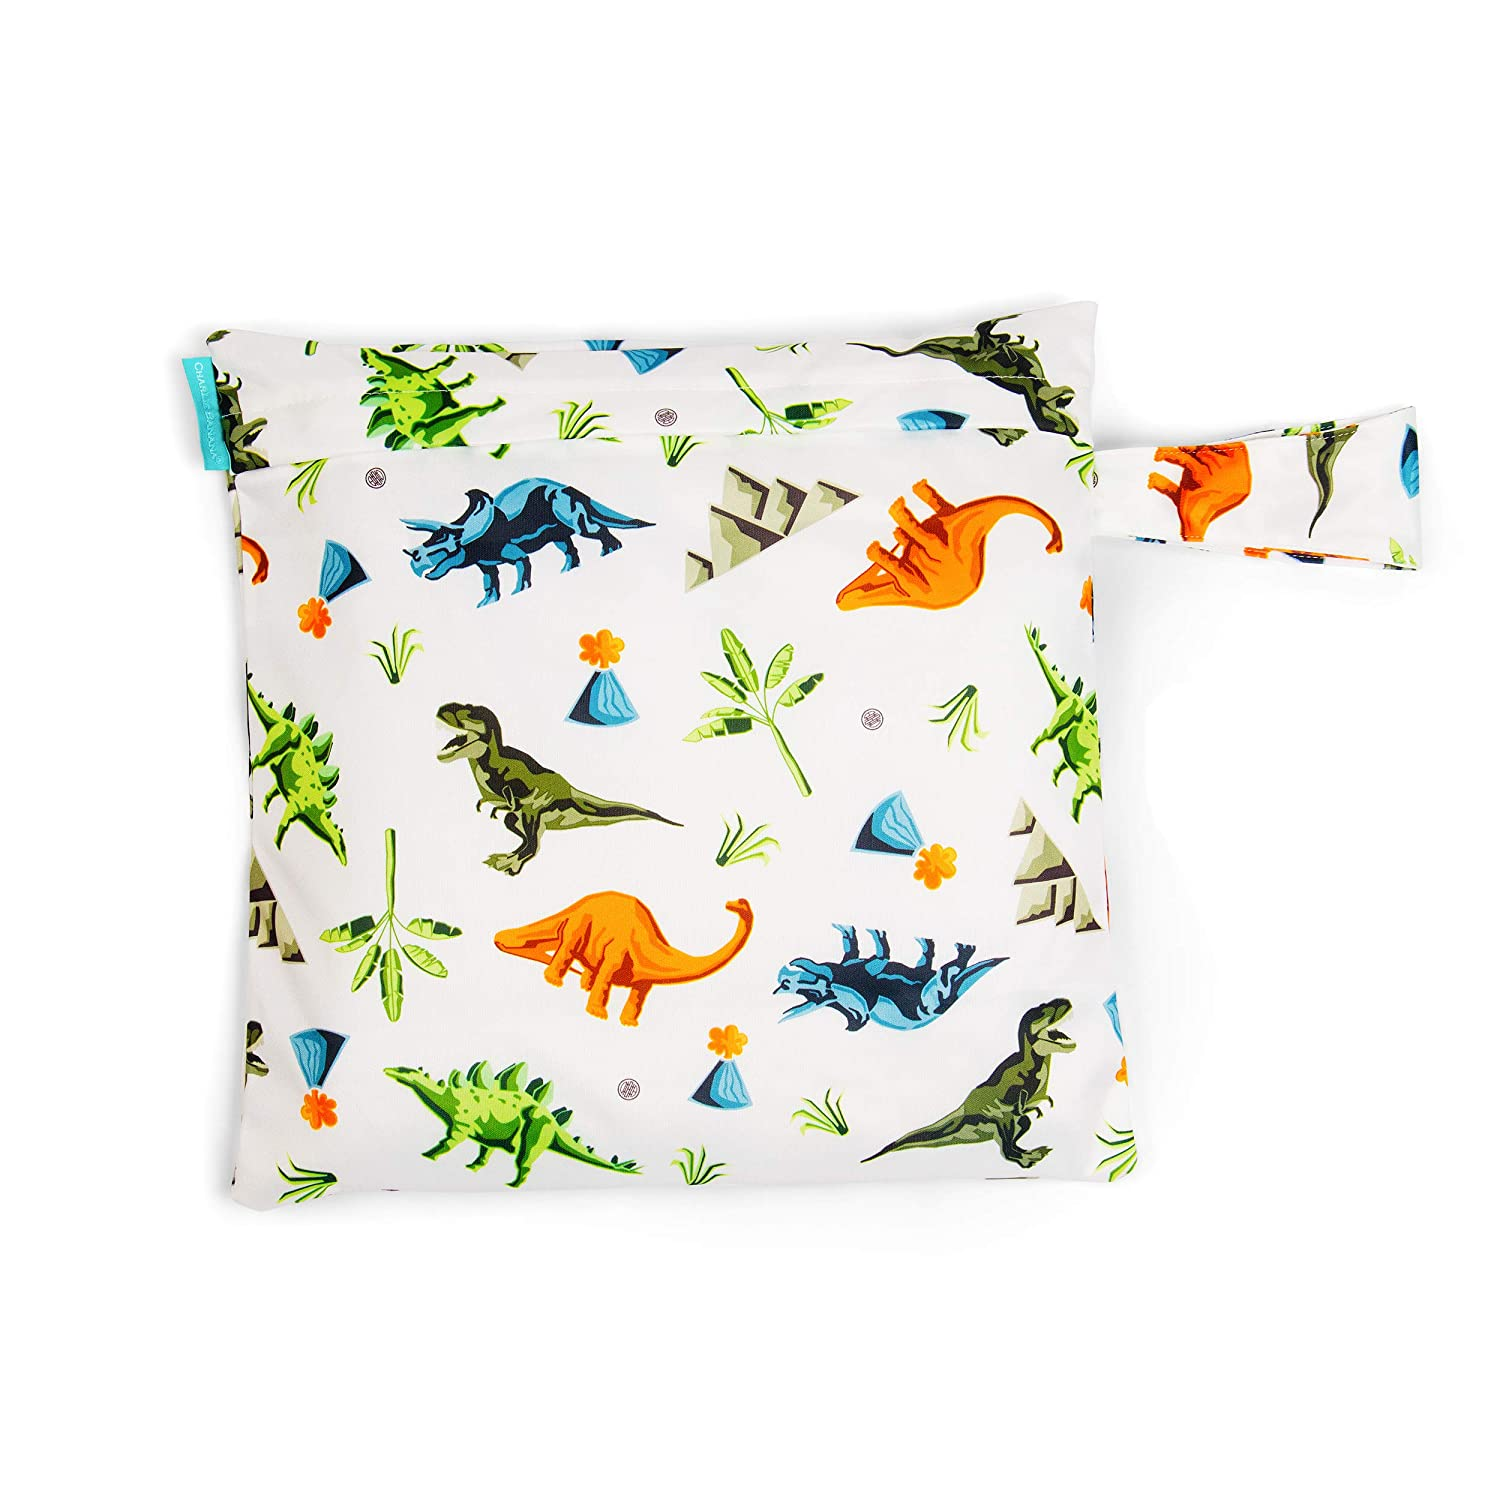 Charlie Banana Baby Waterproof Reusable and Washable Tote Bag for Diapers and Swimwear, Dinosaurs